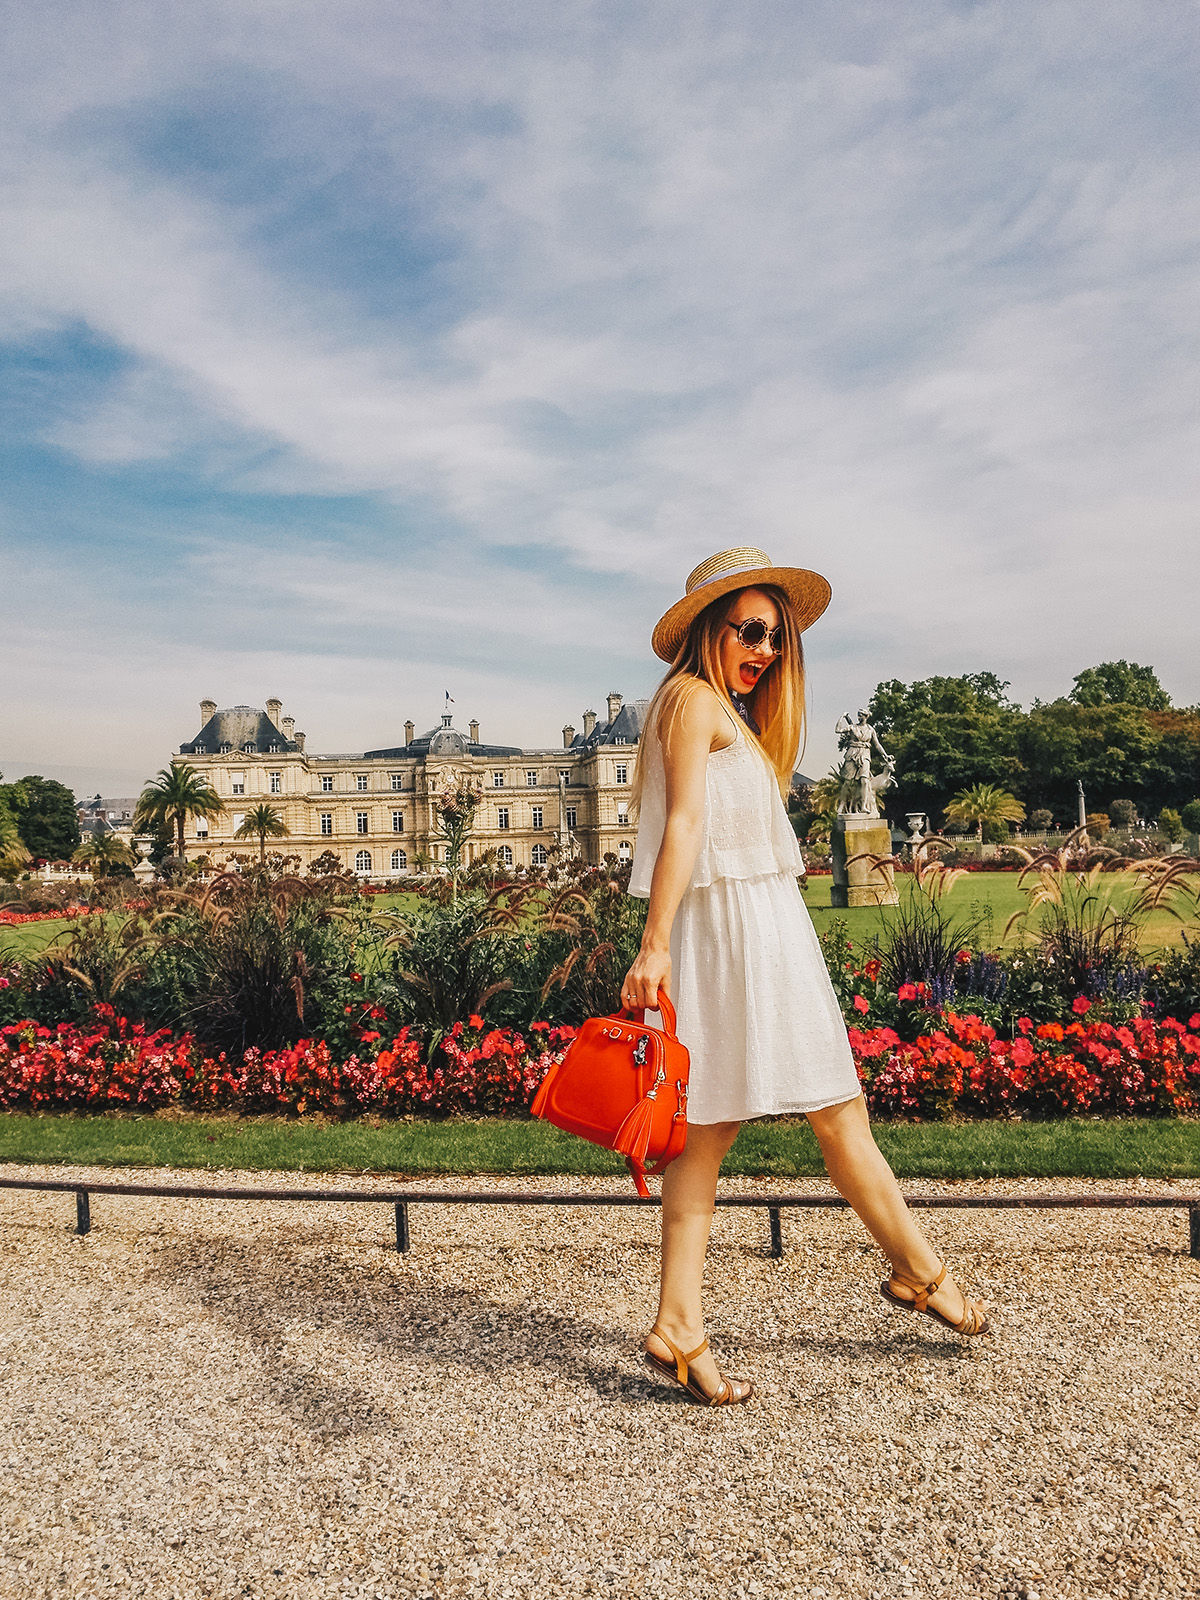 paris-jardin-luxembourg-pink-wish-french-outfit-7